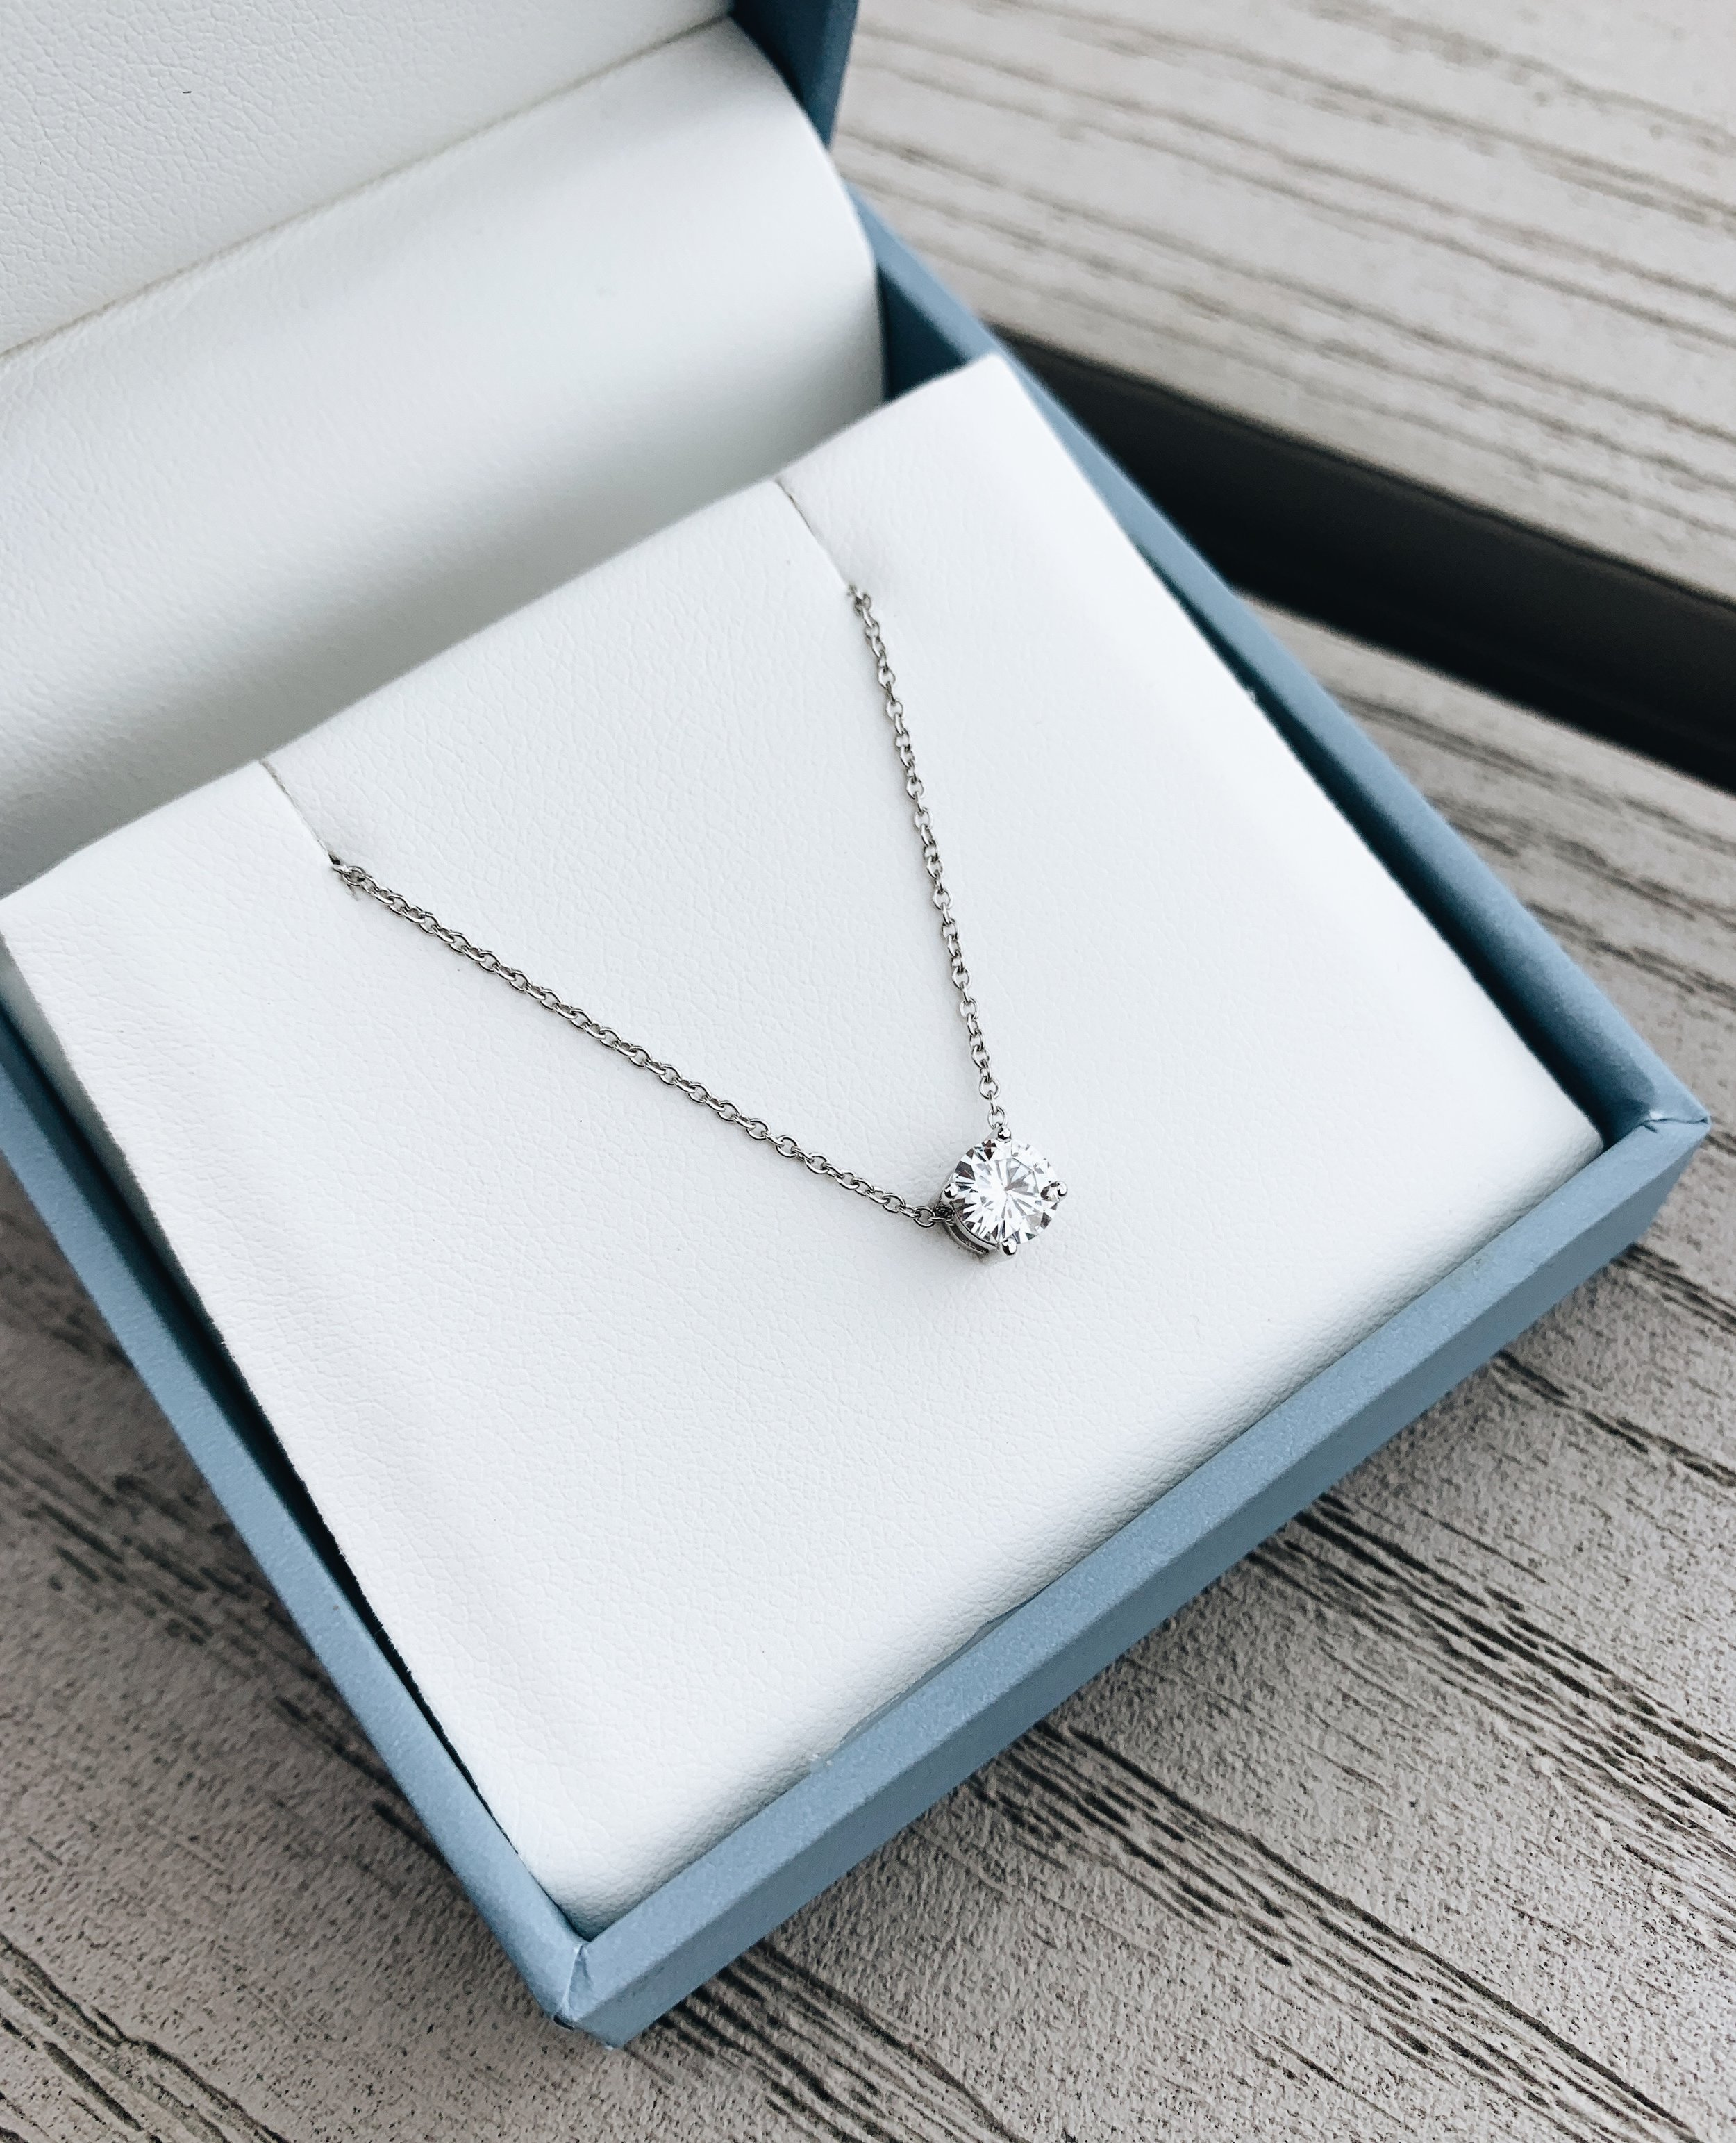 Charles & Colvard Forever One Pendant. Moissanite gem stone. Best gems for jewelry. Sustainable jewelry. Push gift for moms. Push present ideas. Gift ideas for mom. #sponsored #ad #CharlesColvard #Moissanite #gemstones #PickMeUpBBoxx